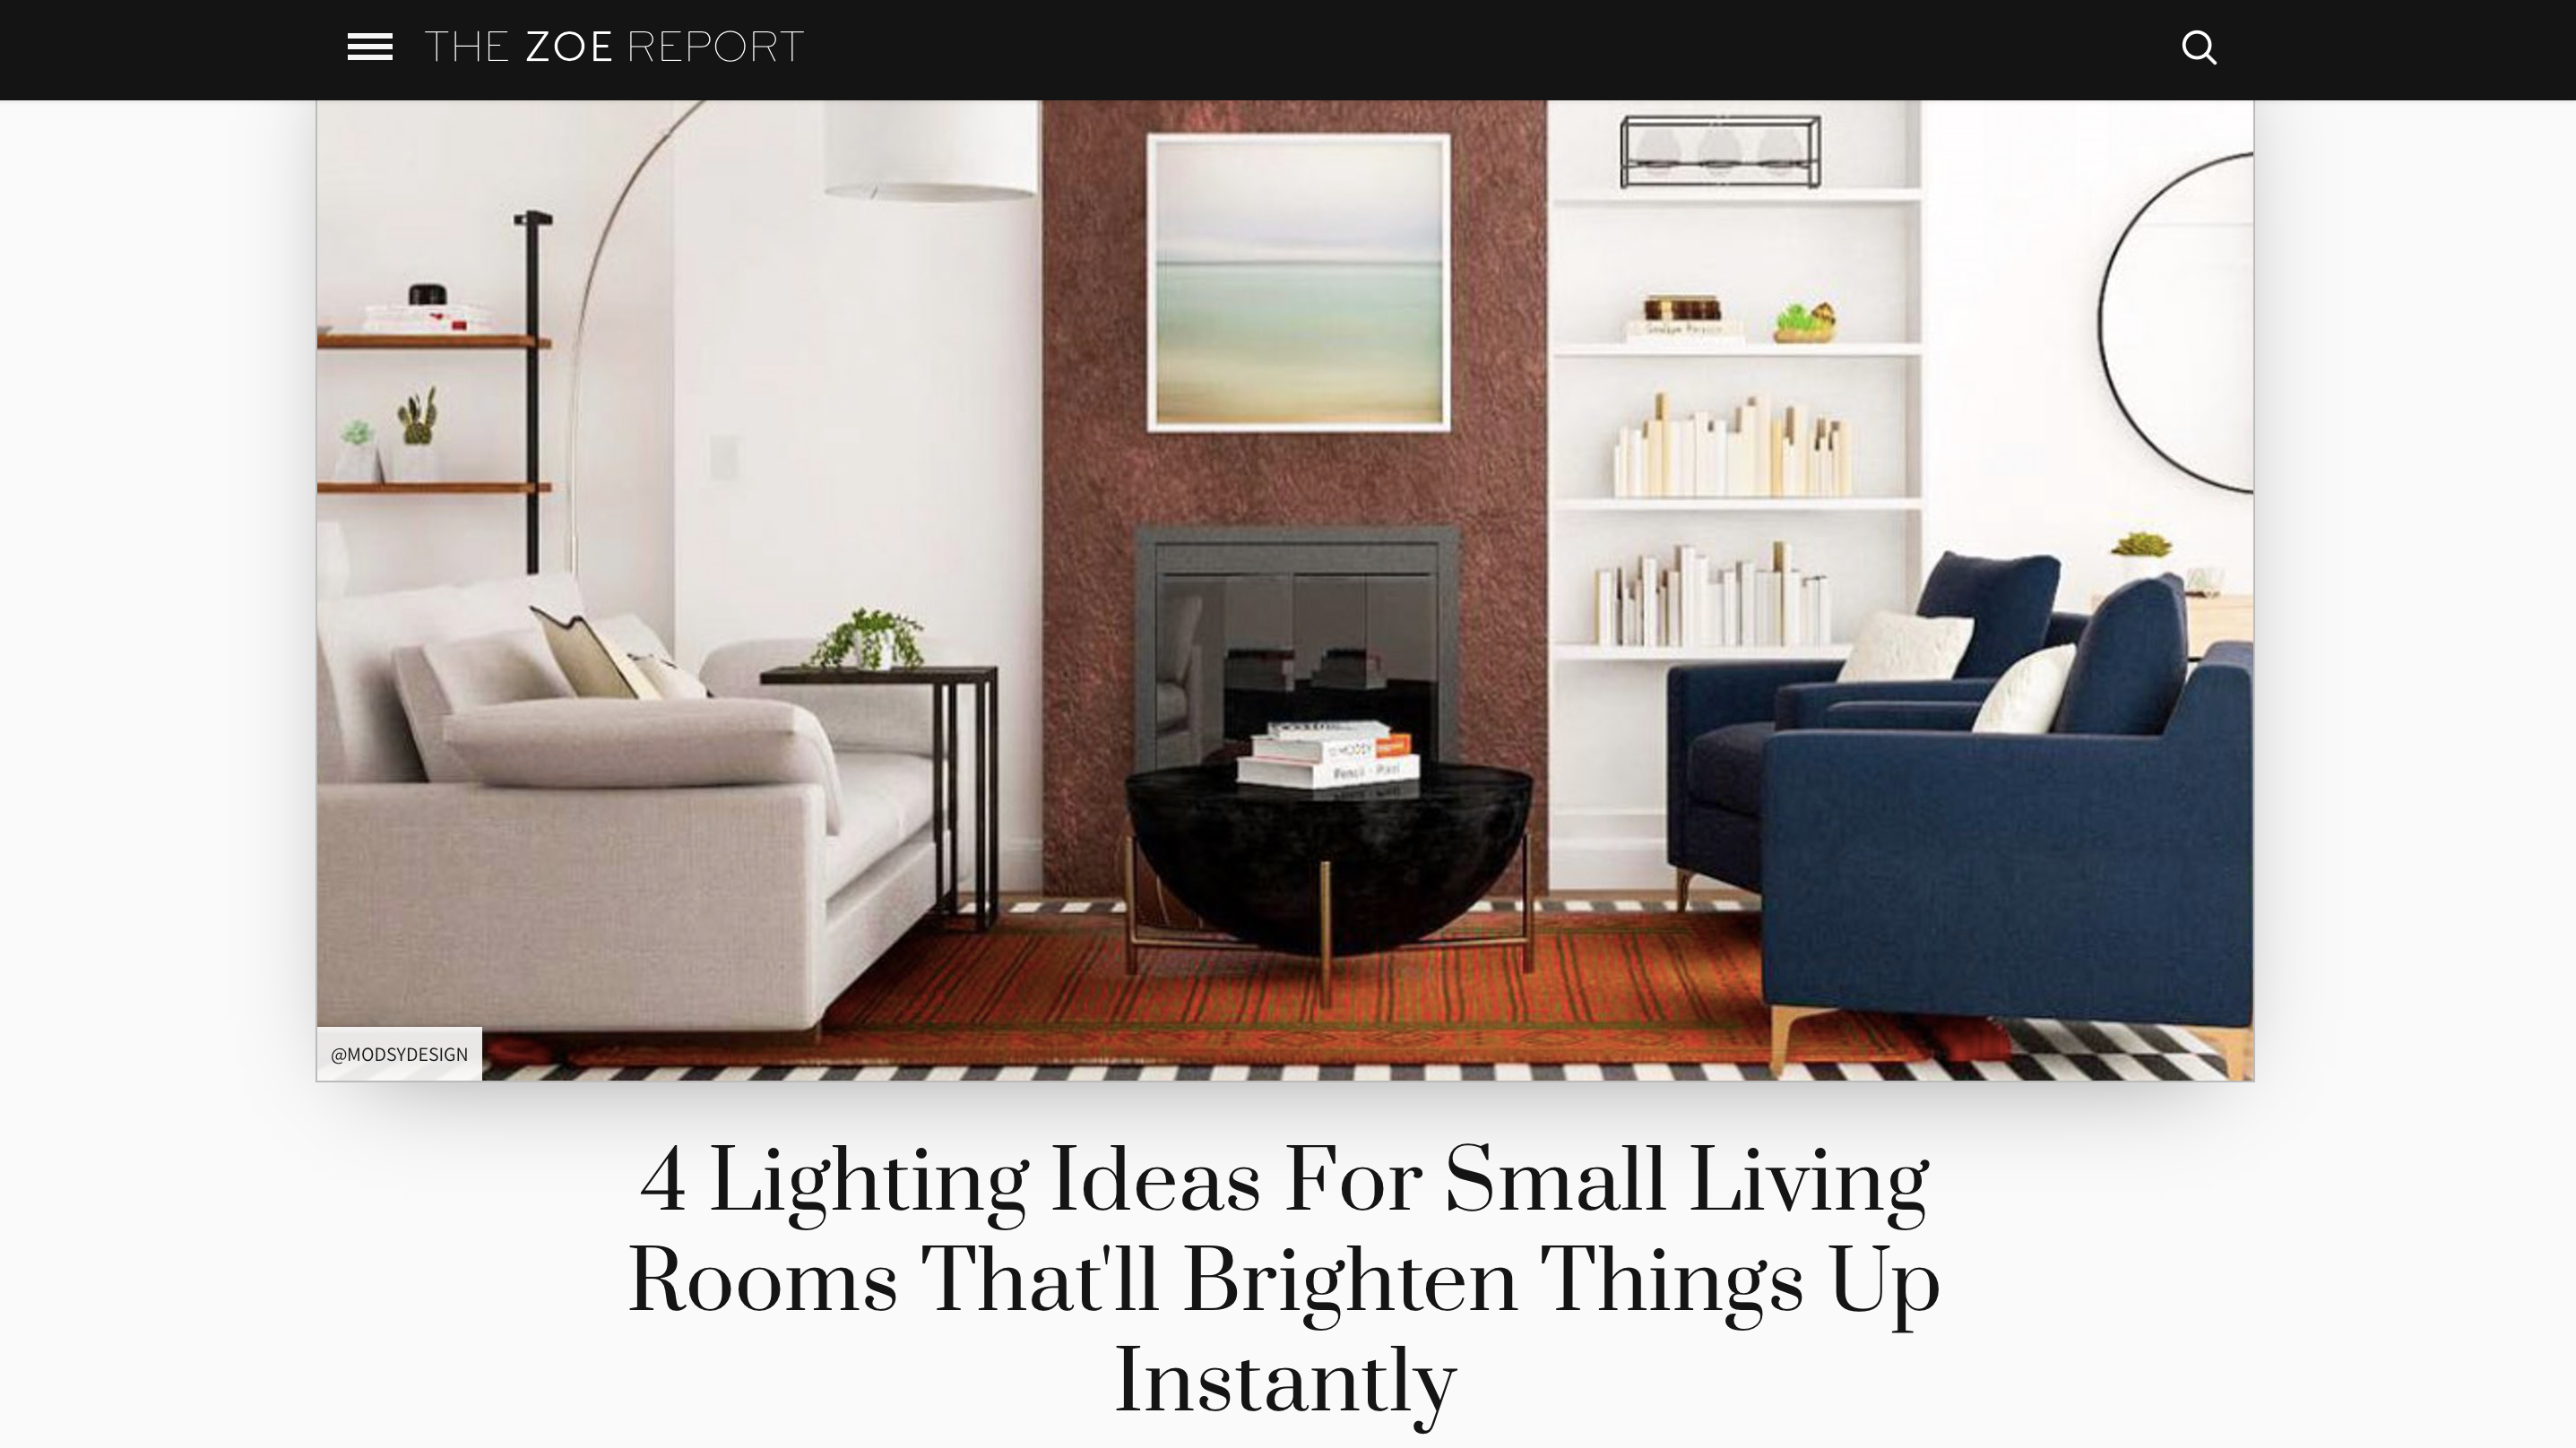 4 Lighting Ideas For Small Living Rooms That'll Brighten Things Up Instantly